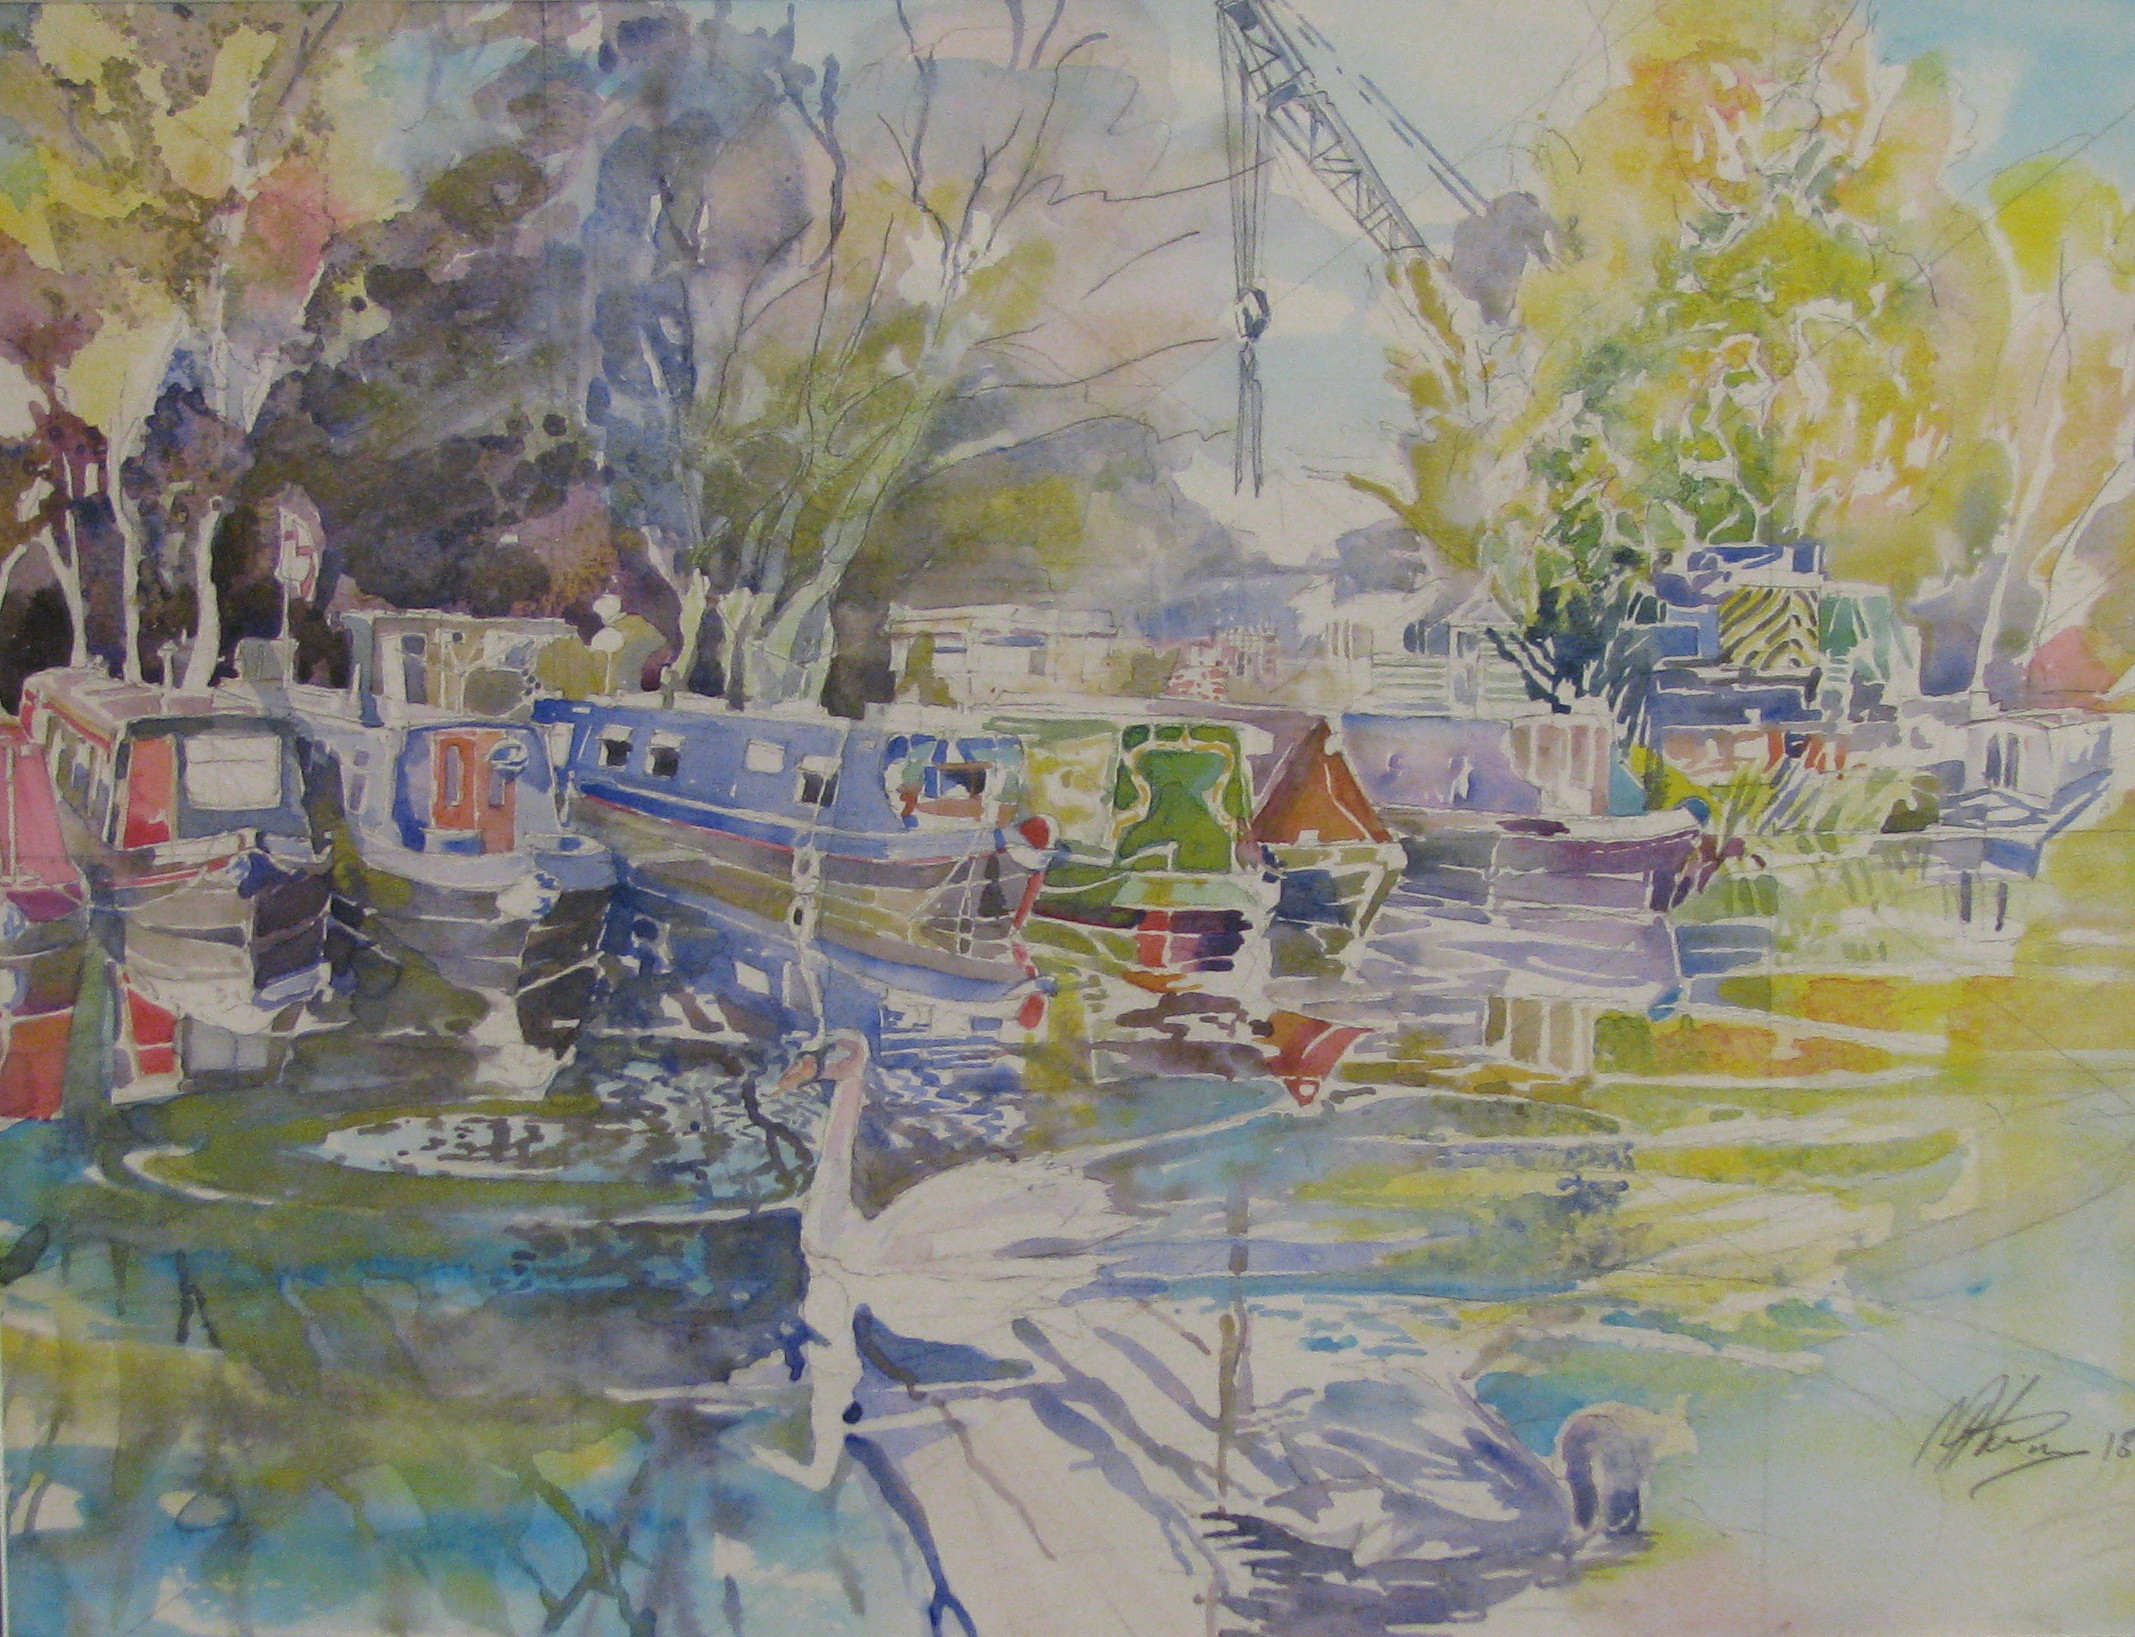 Mike Helmy's latest display of watercolours